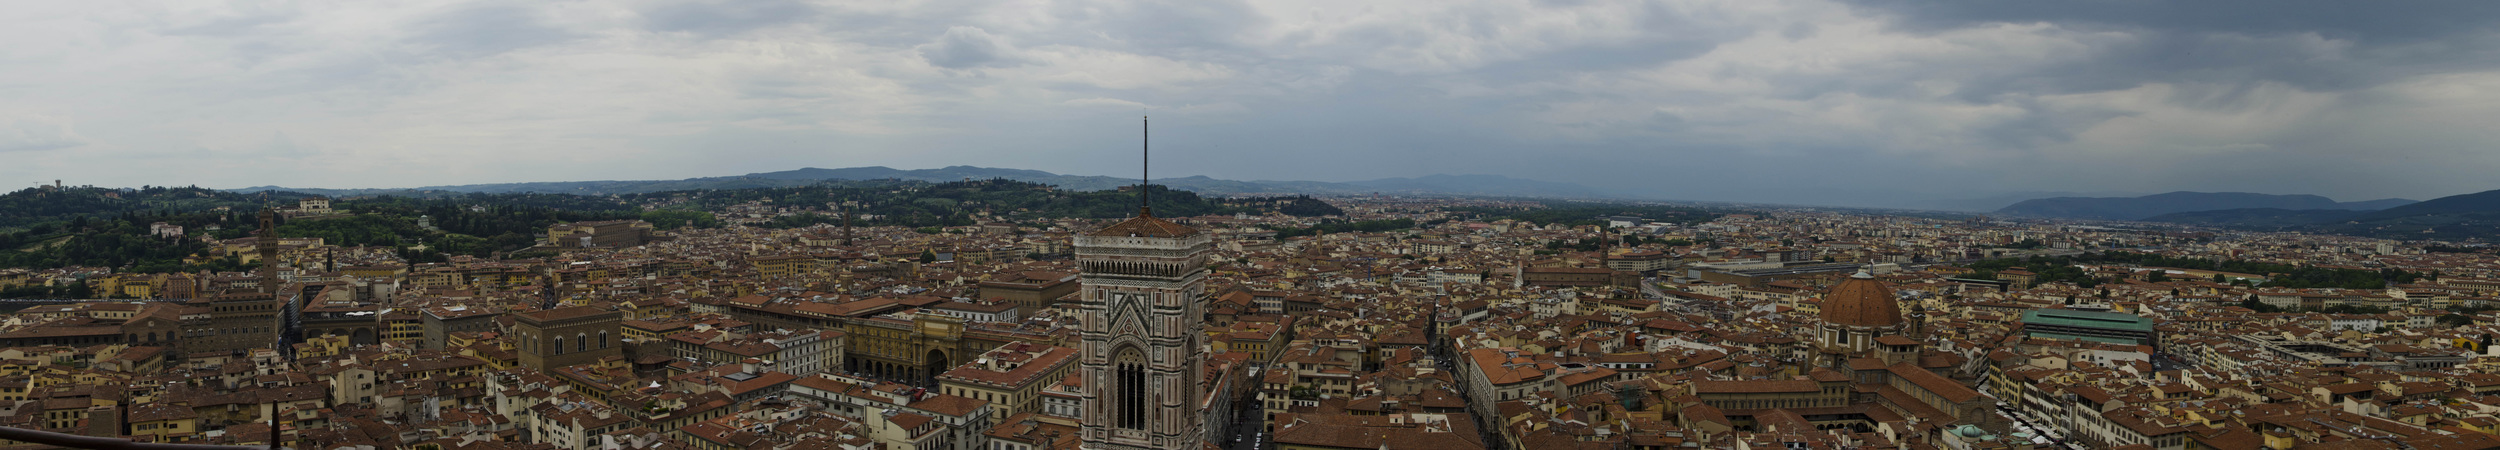 Florence_skyline_Panorama1_small.jpg